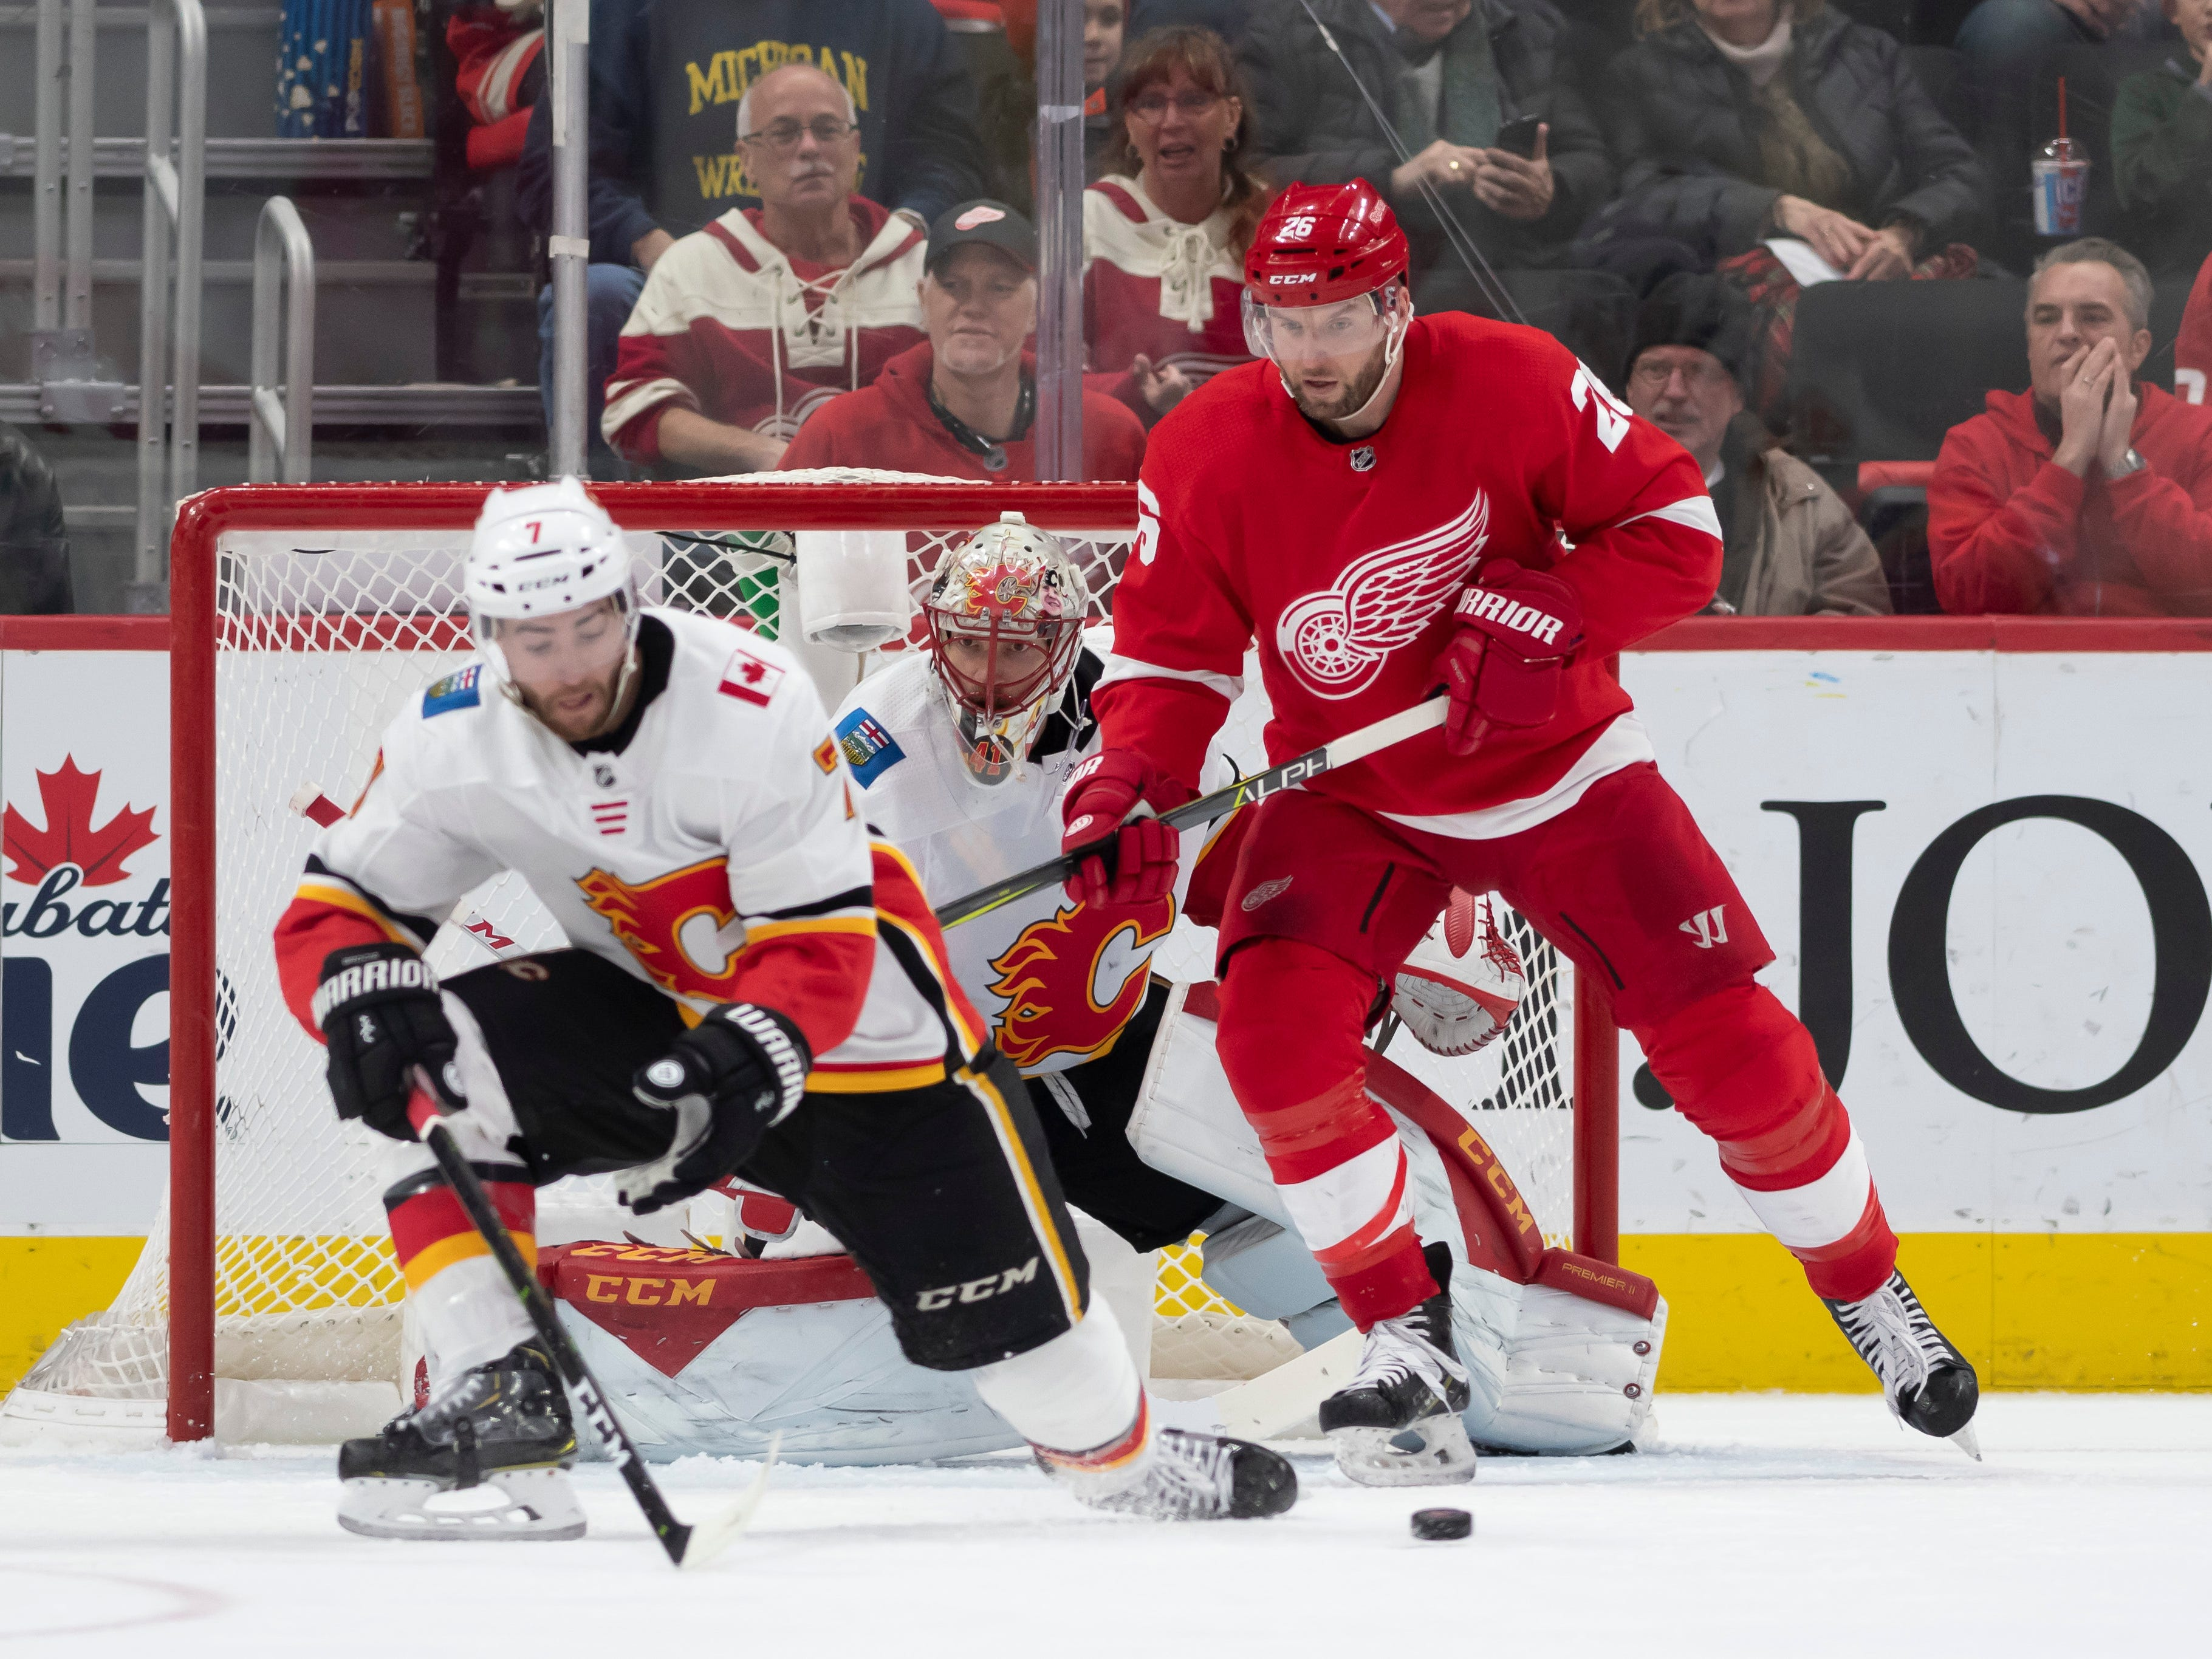 Detroit left wing Thomas Vanek tries to get the puck past Calgary defenseman T.J. Brodie and goaltender Mike Smith in the second period.